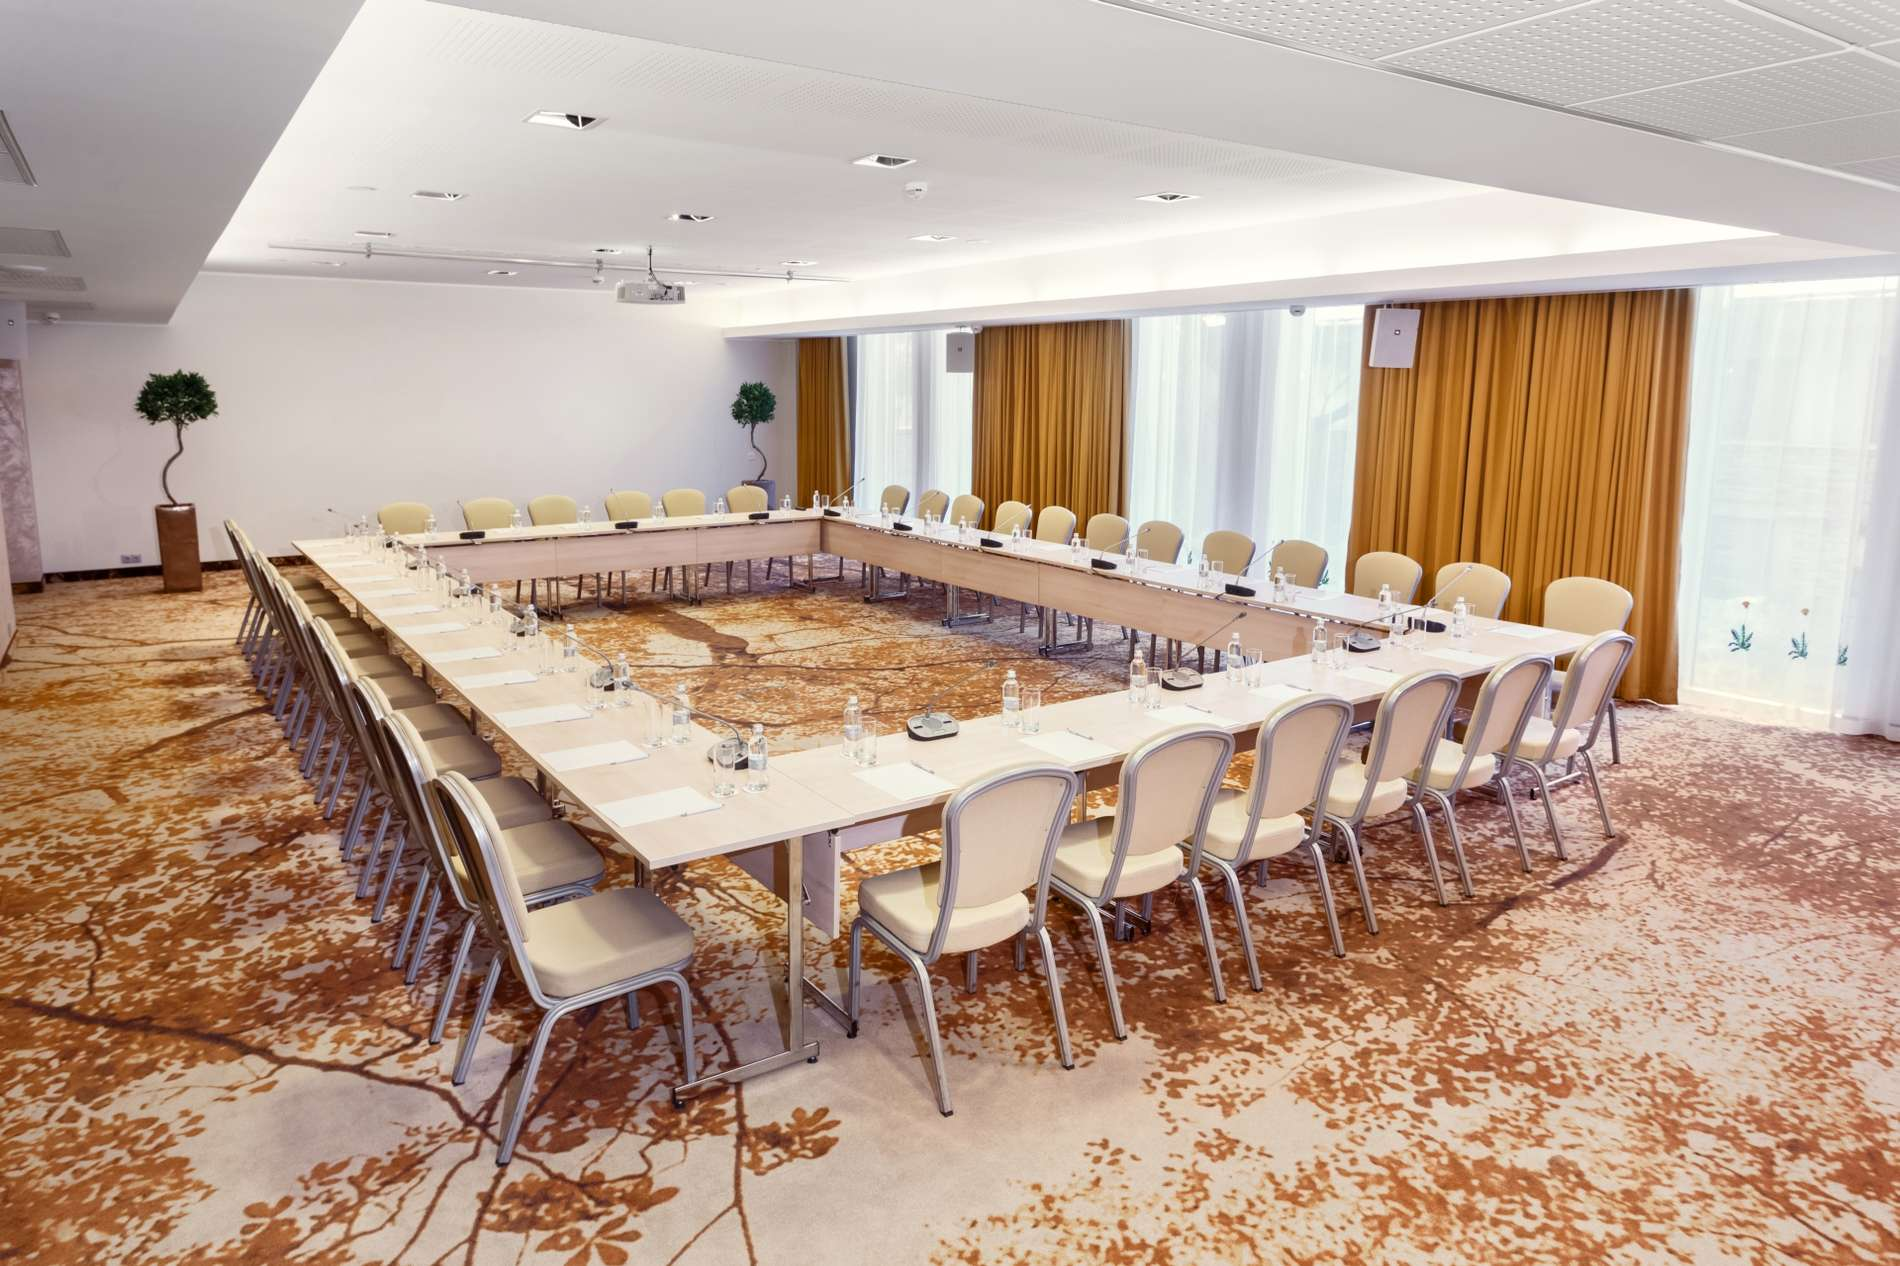 Nordic Hotel Forum_meeting room_Sergei Zjuganov_2017